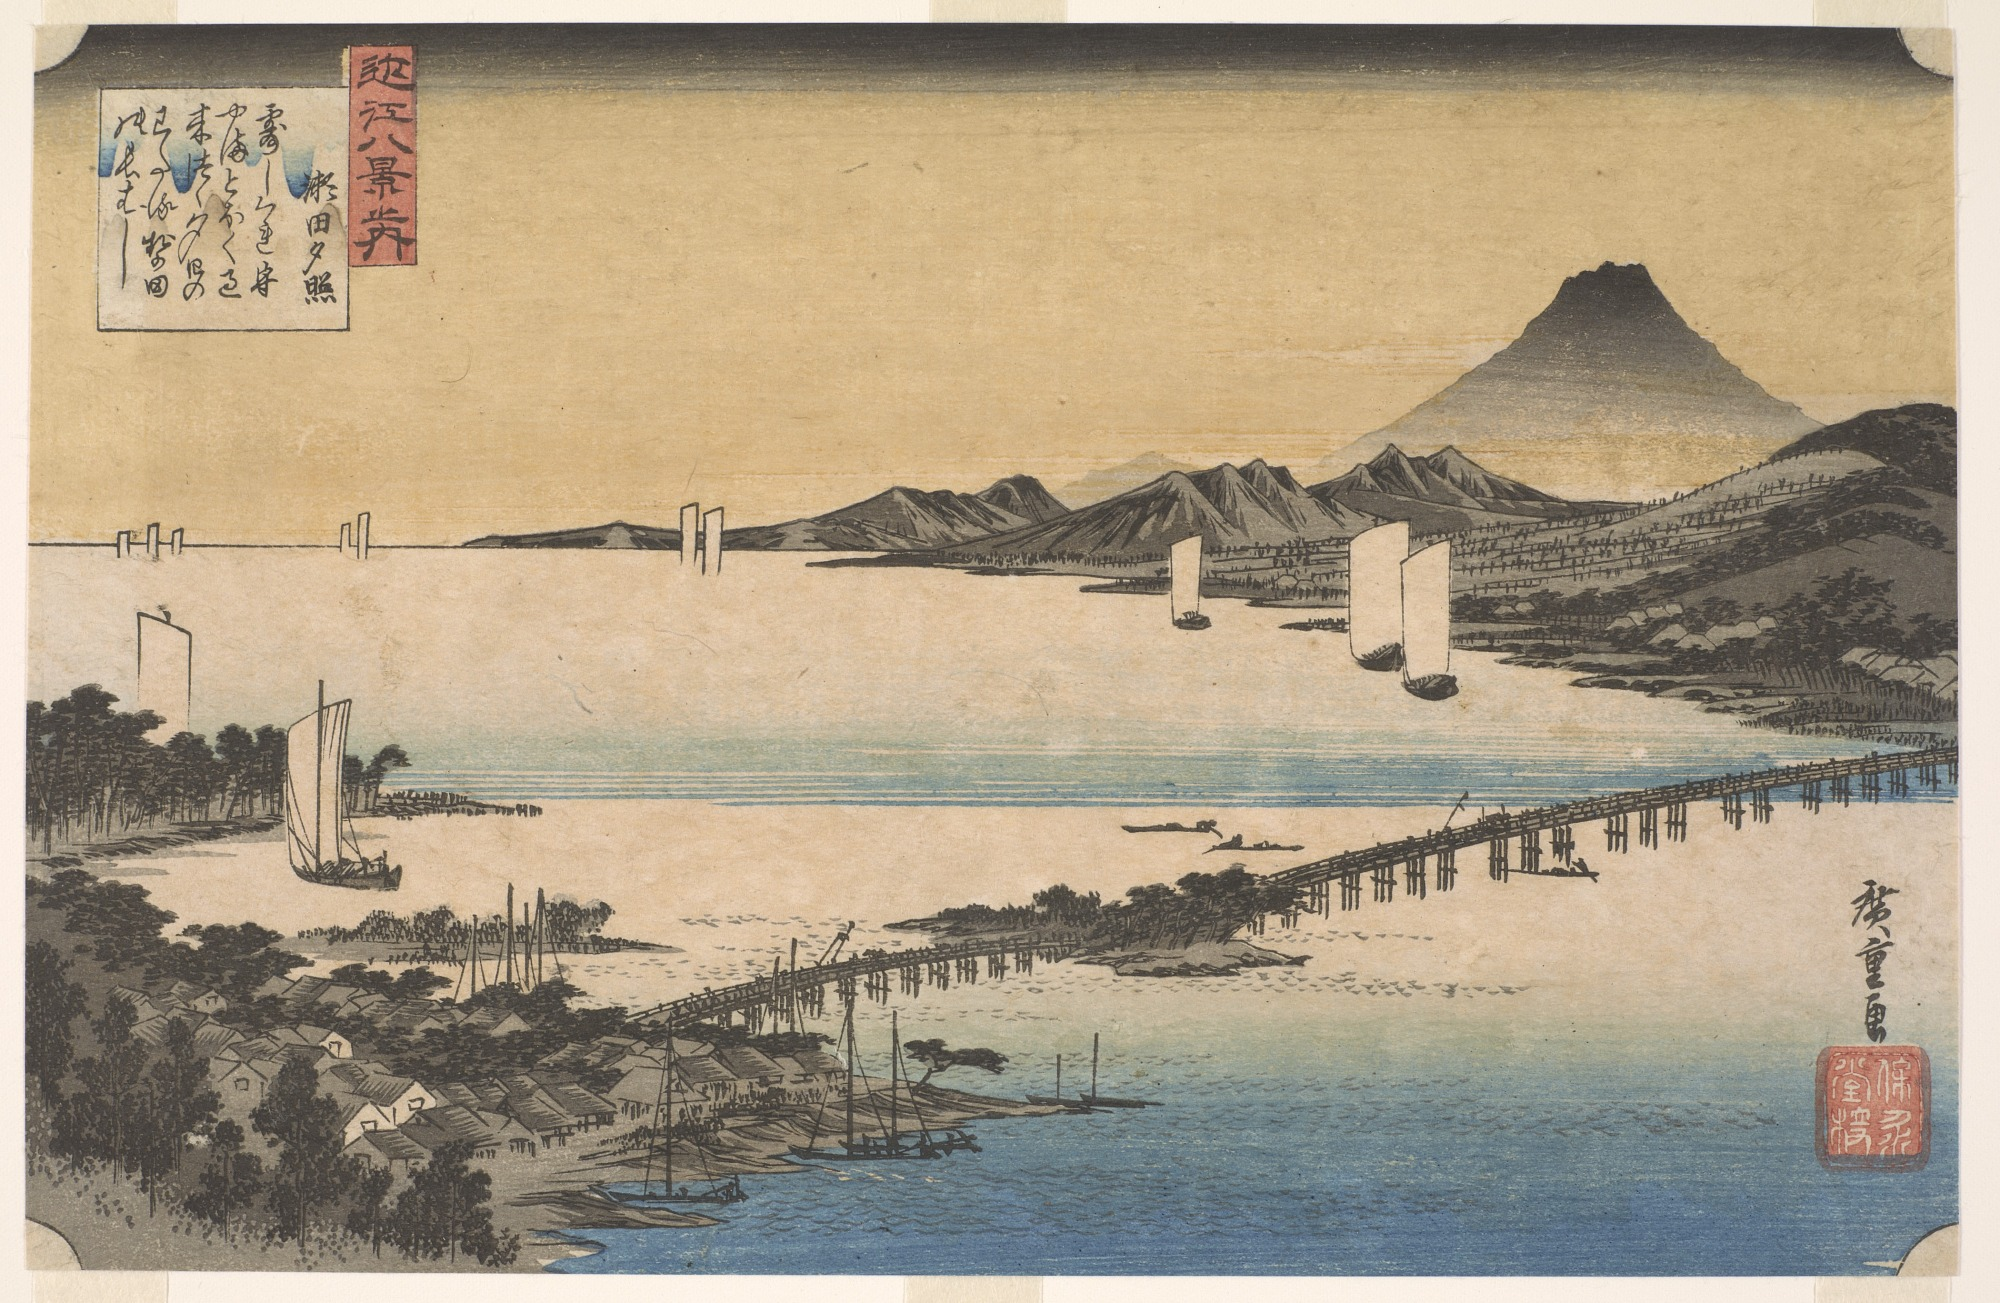 Evening Glow at Seta, from the series Eight Views of Omi Province